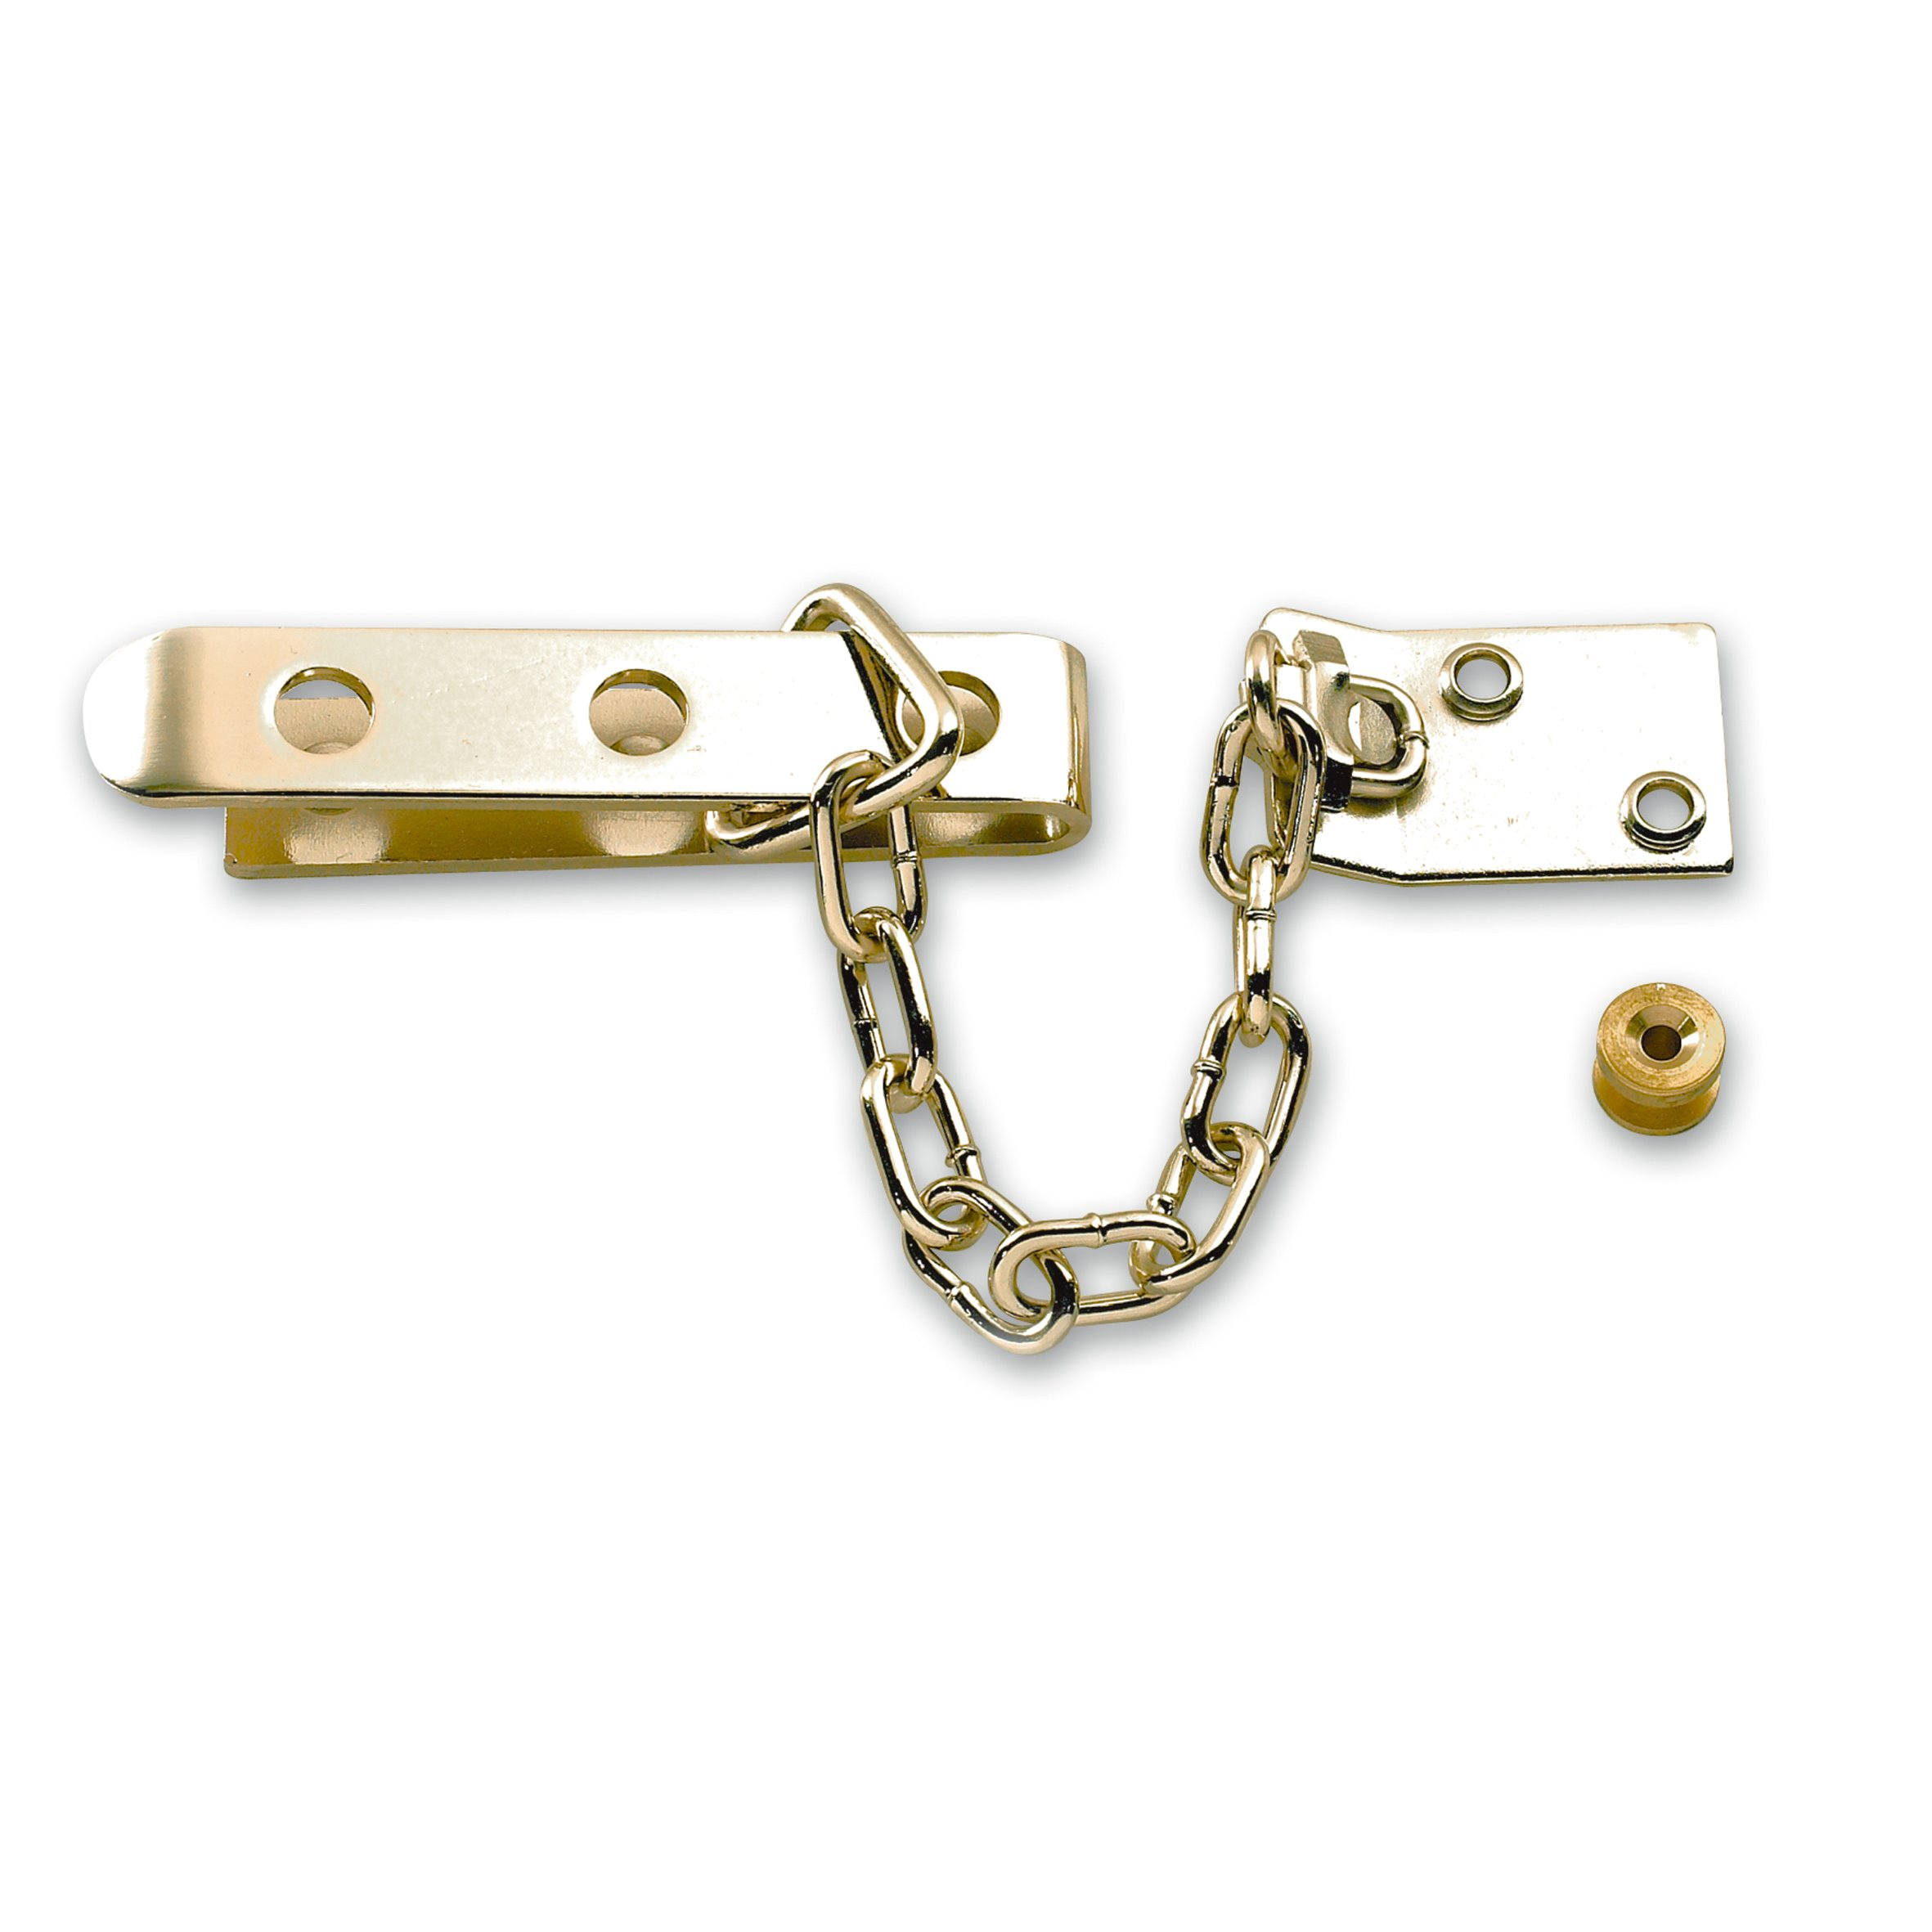 P1040 Security Door Chain